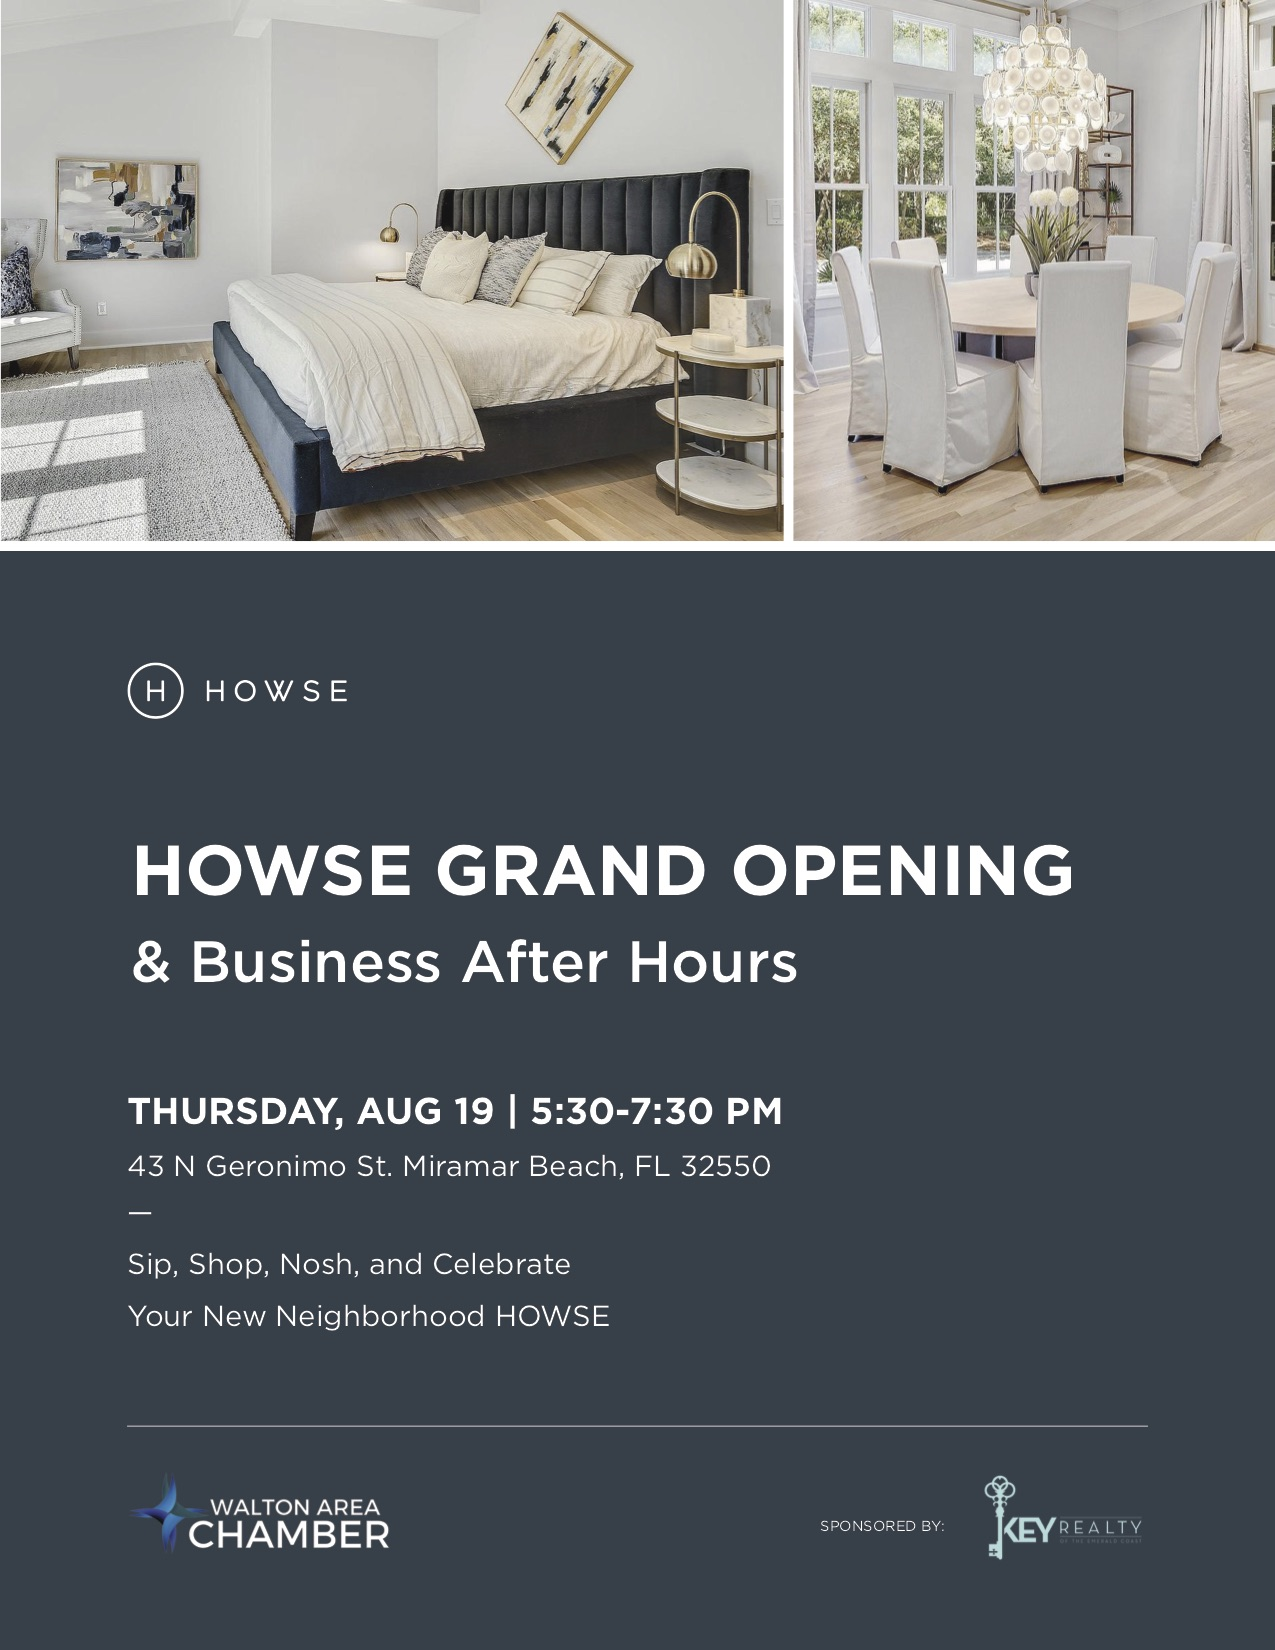 New Home Furnishings store, HOWSE, to Host Grand Opening of Miramar Beach Location